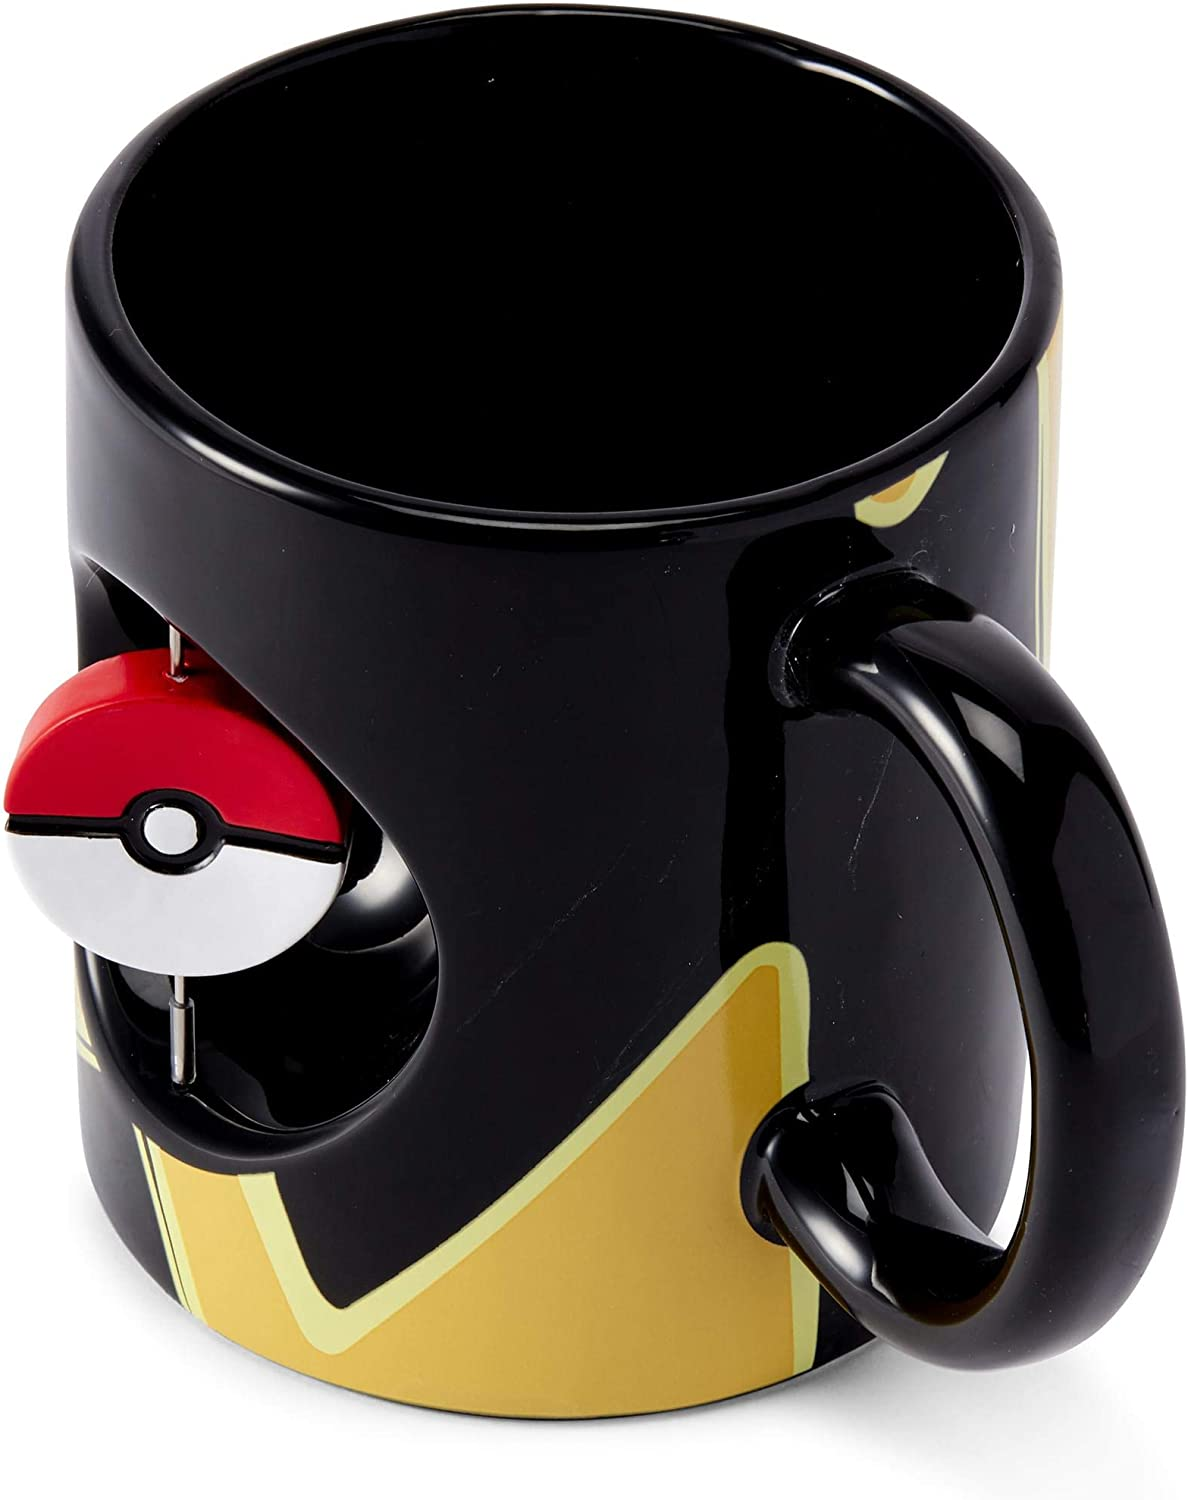 Official Pokemon Mug - 16.9-Ounce Black Ceramic Cup for Hot Coffee, Tea, Cocoa - Novelty Drinkware w/ Pokeball Spinner - Features Pikachu - Perfect for Home, Office, Parties - Licensed Merchandise